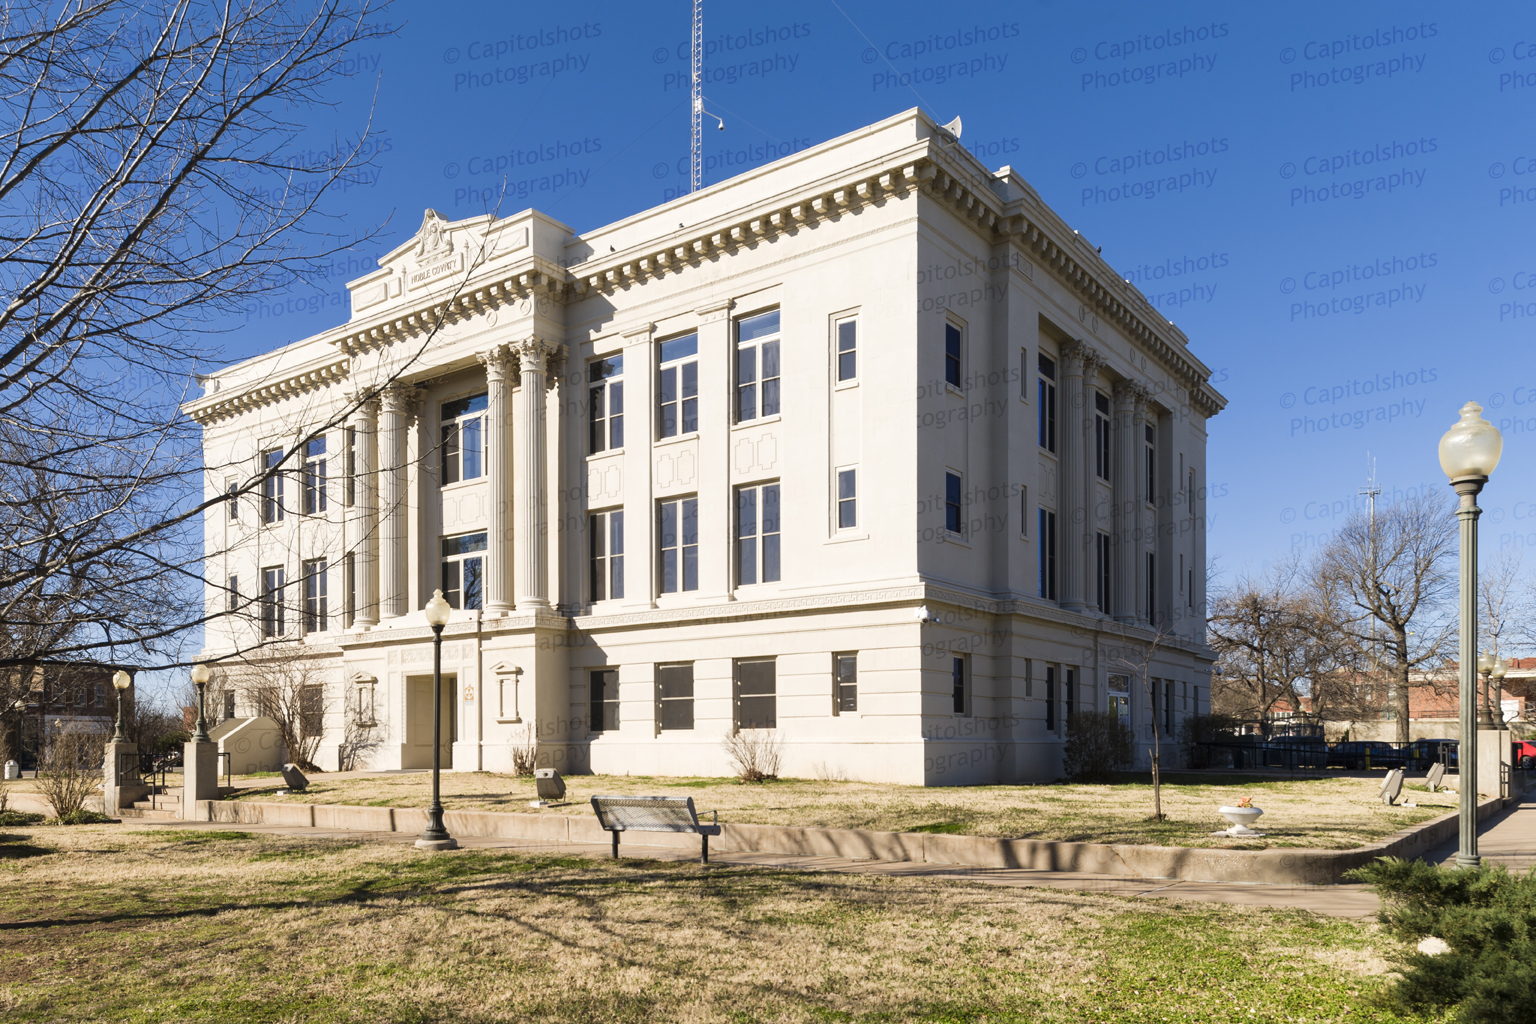 noble county The noble county courthouse is home to many of the county offices it is located on a 5 acre tract at the heart of perry, oklahoma, the county seat.